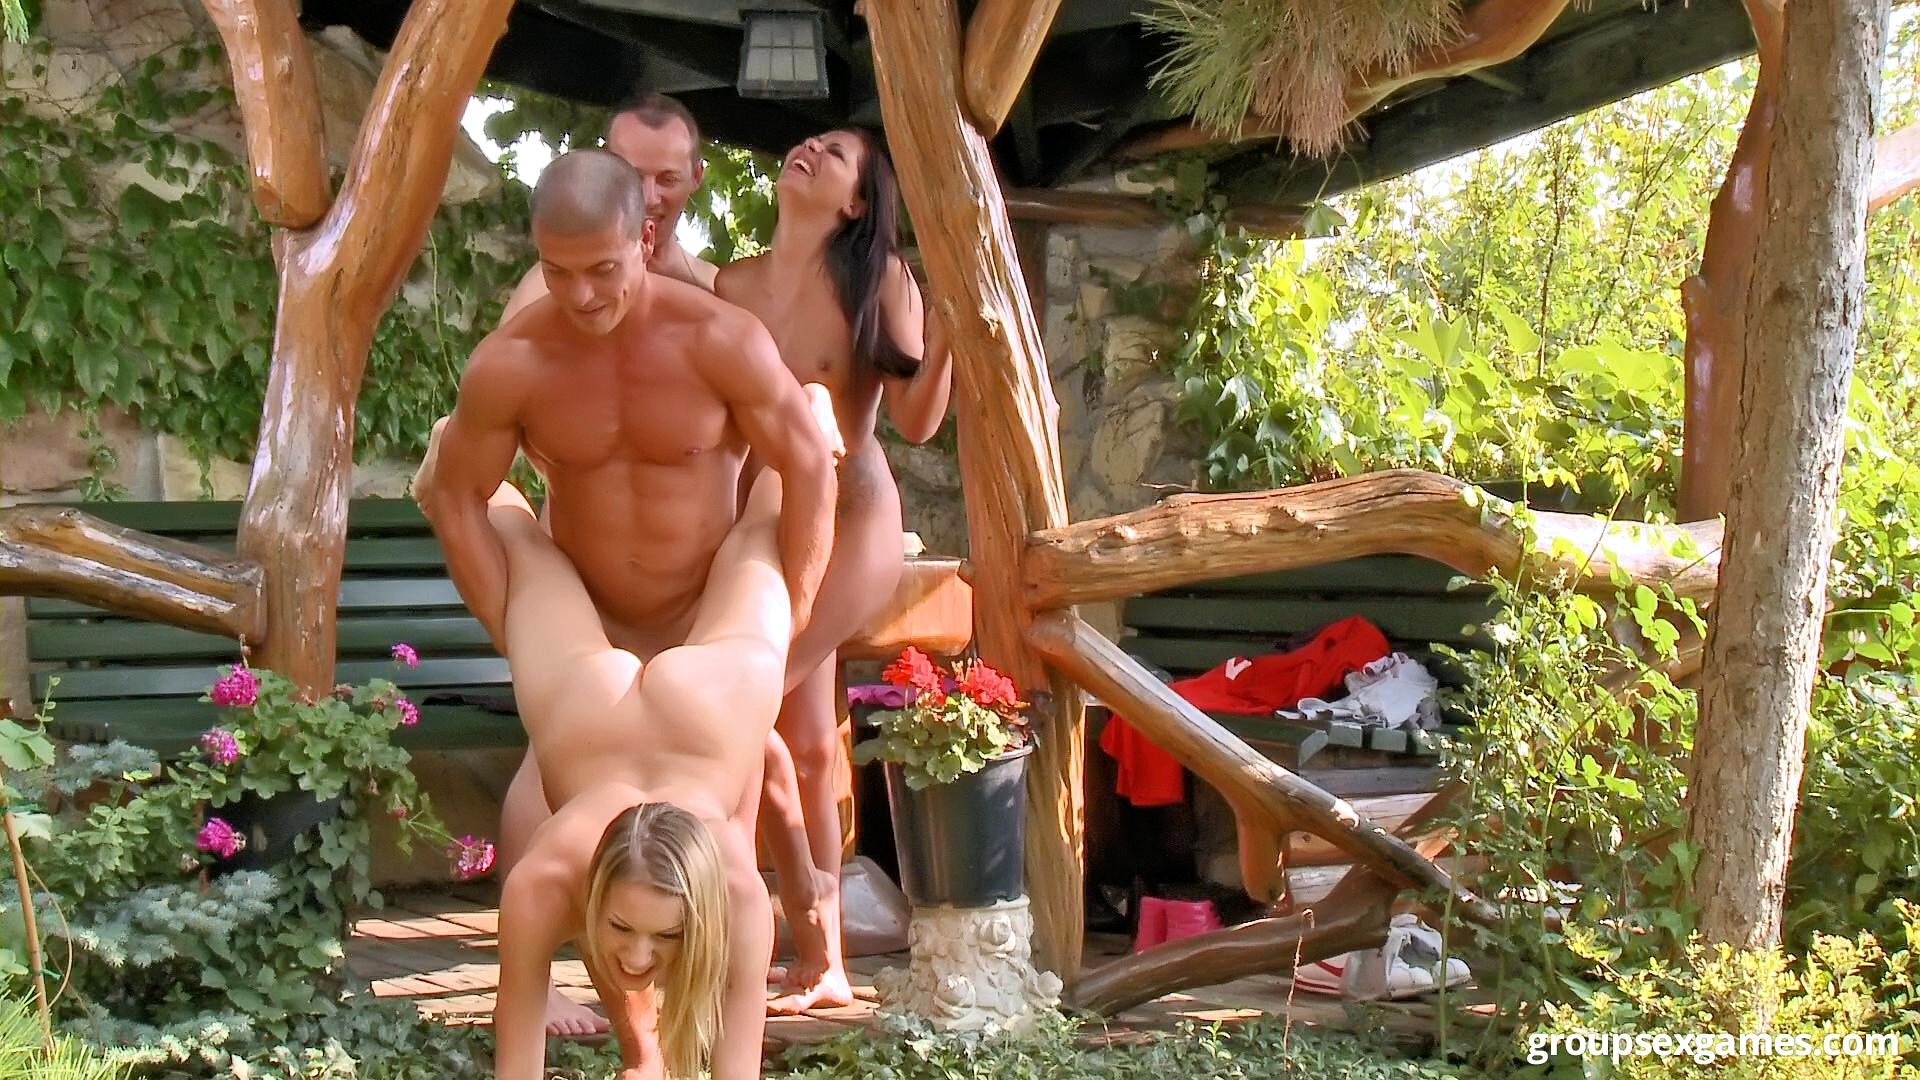 sex games Camping